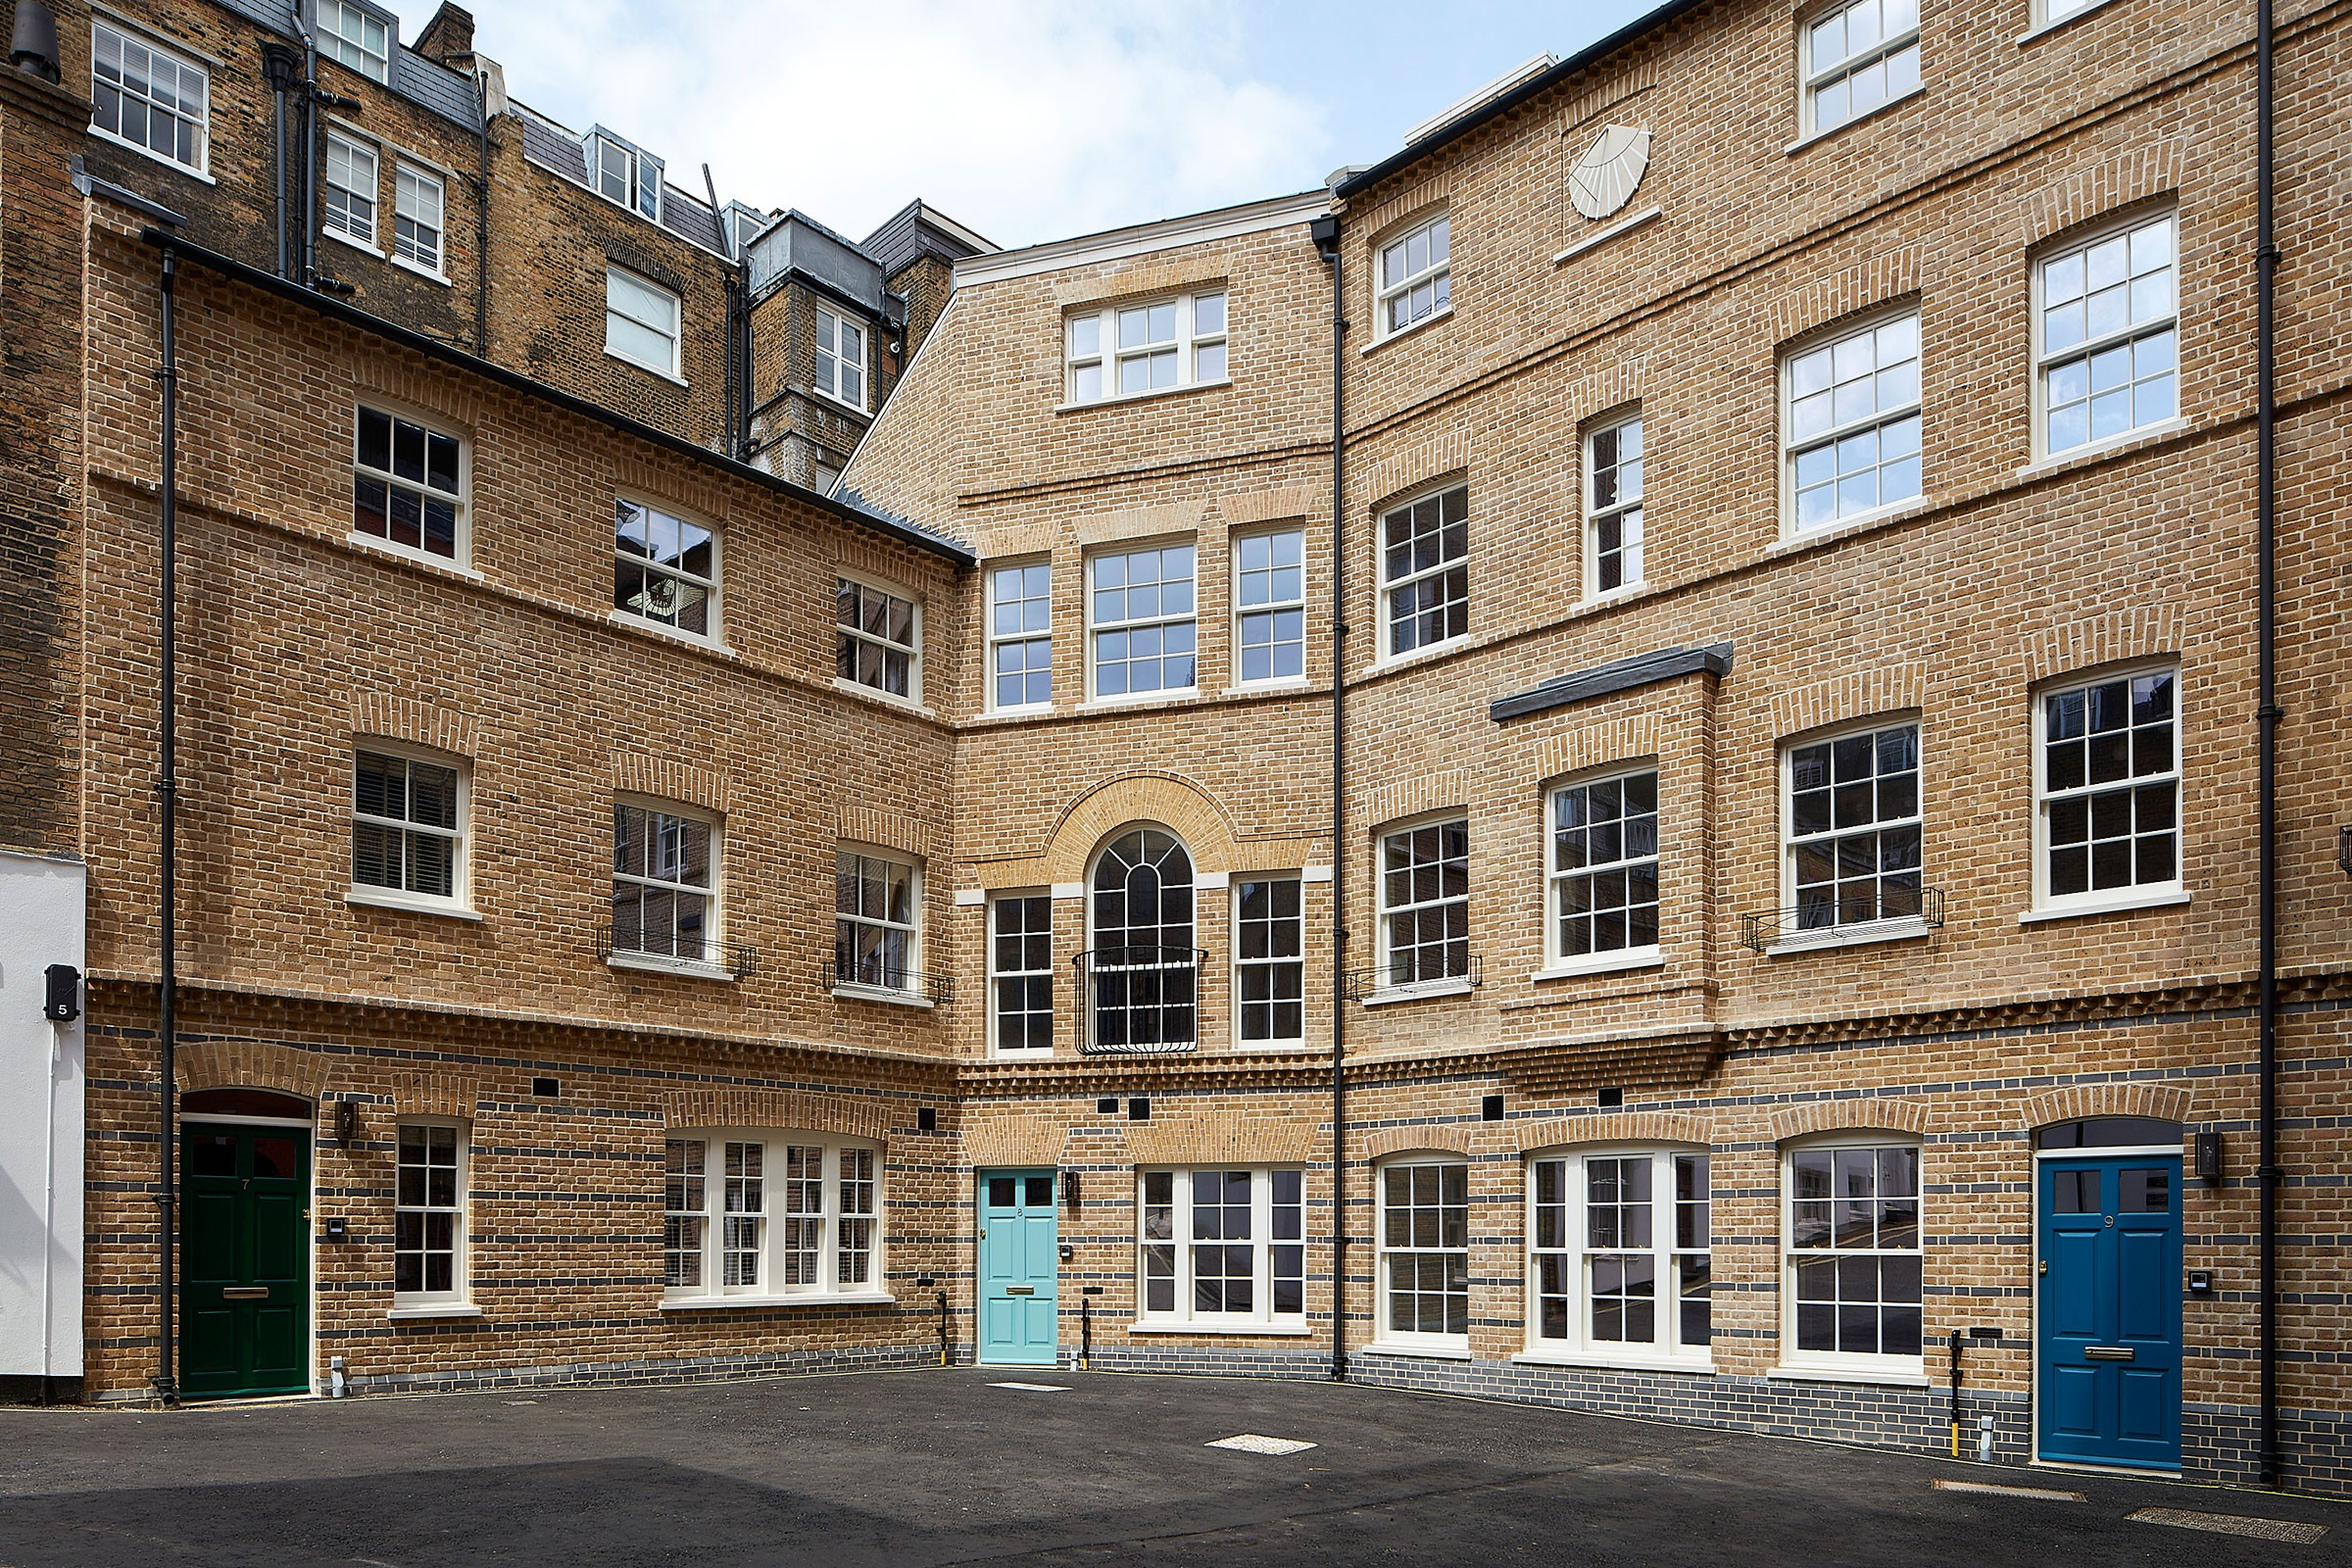 Replacement houses at Dean's Mews, London